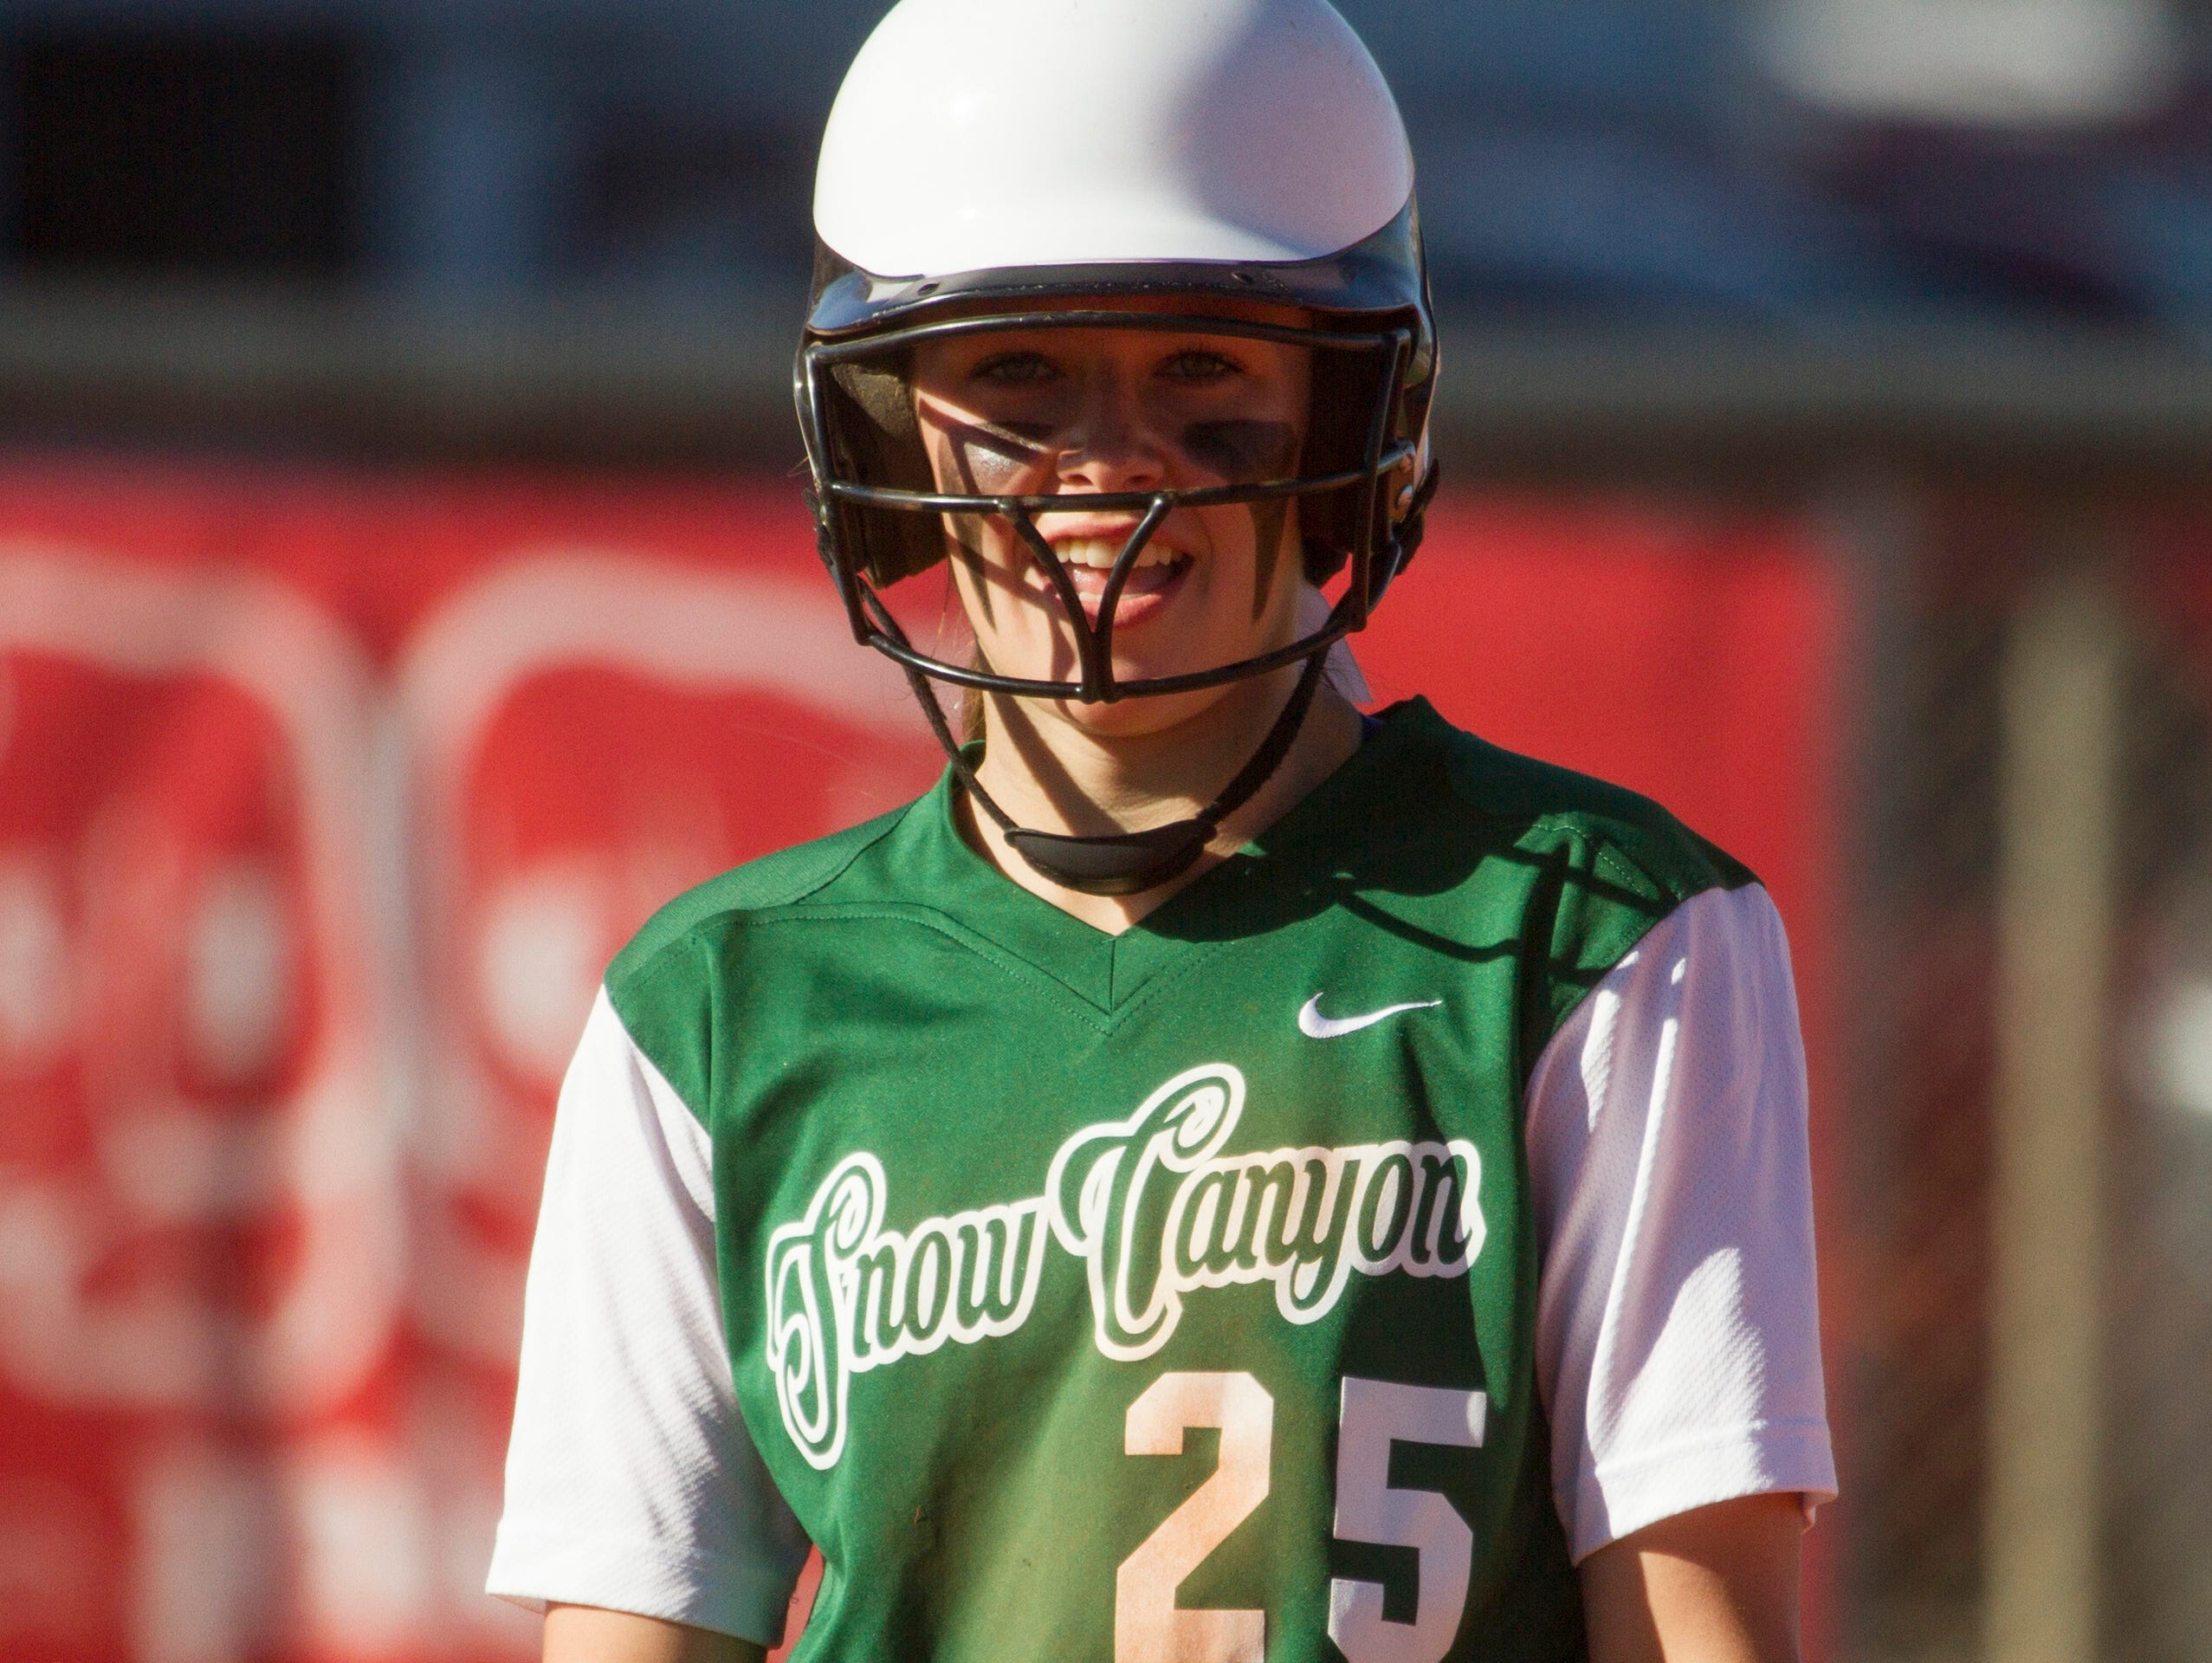 Snow Canyon's Camryn Johnson is all smiles after the Warriors defeated Pine View 4-0 on the road on Friday. With the win, Snow Canyon stays perfect on the season.